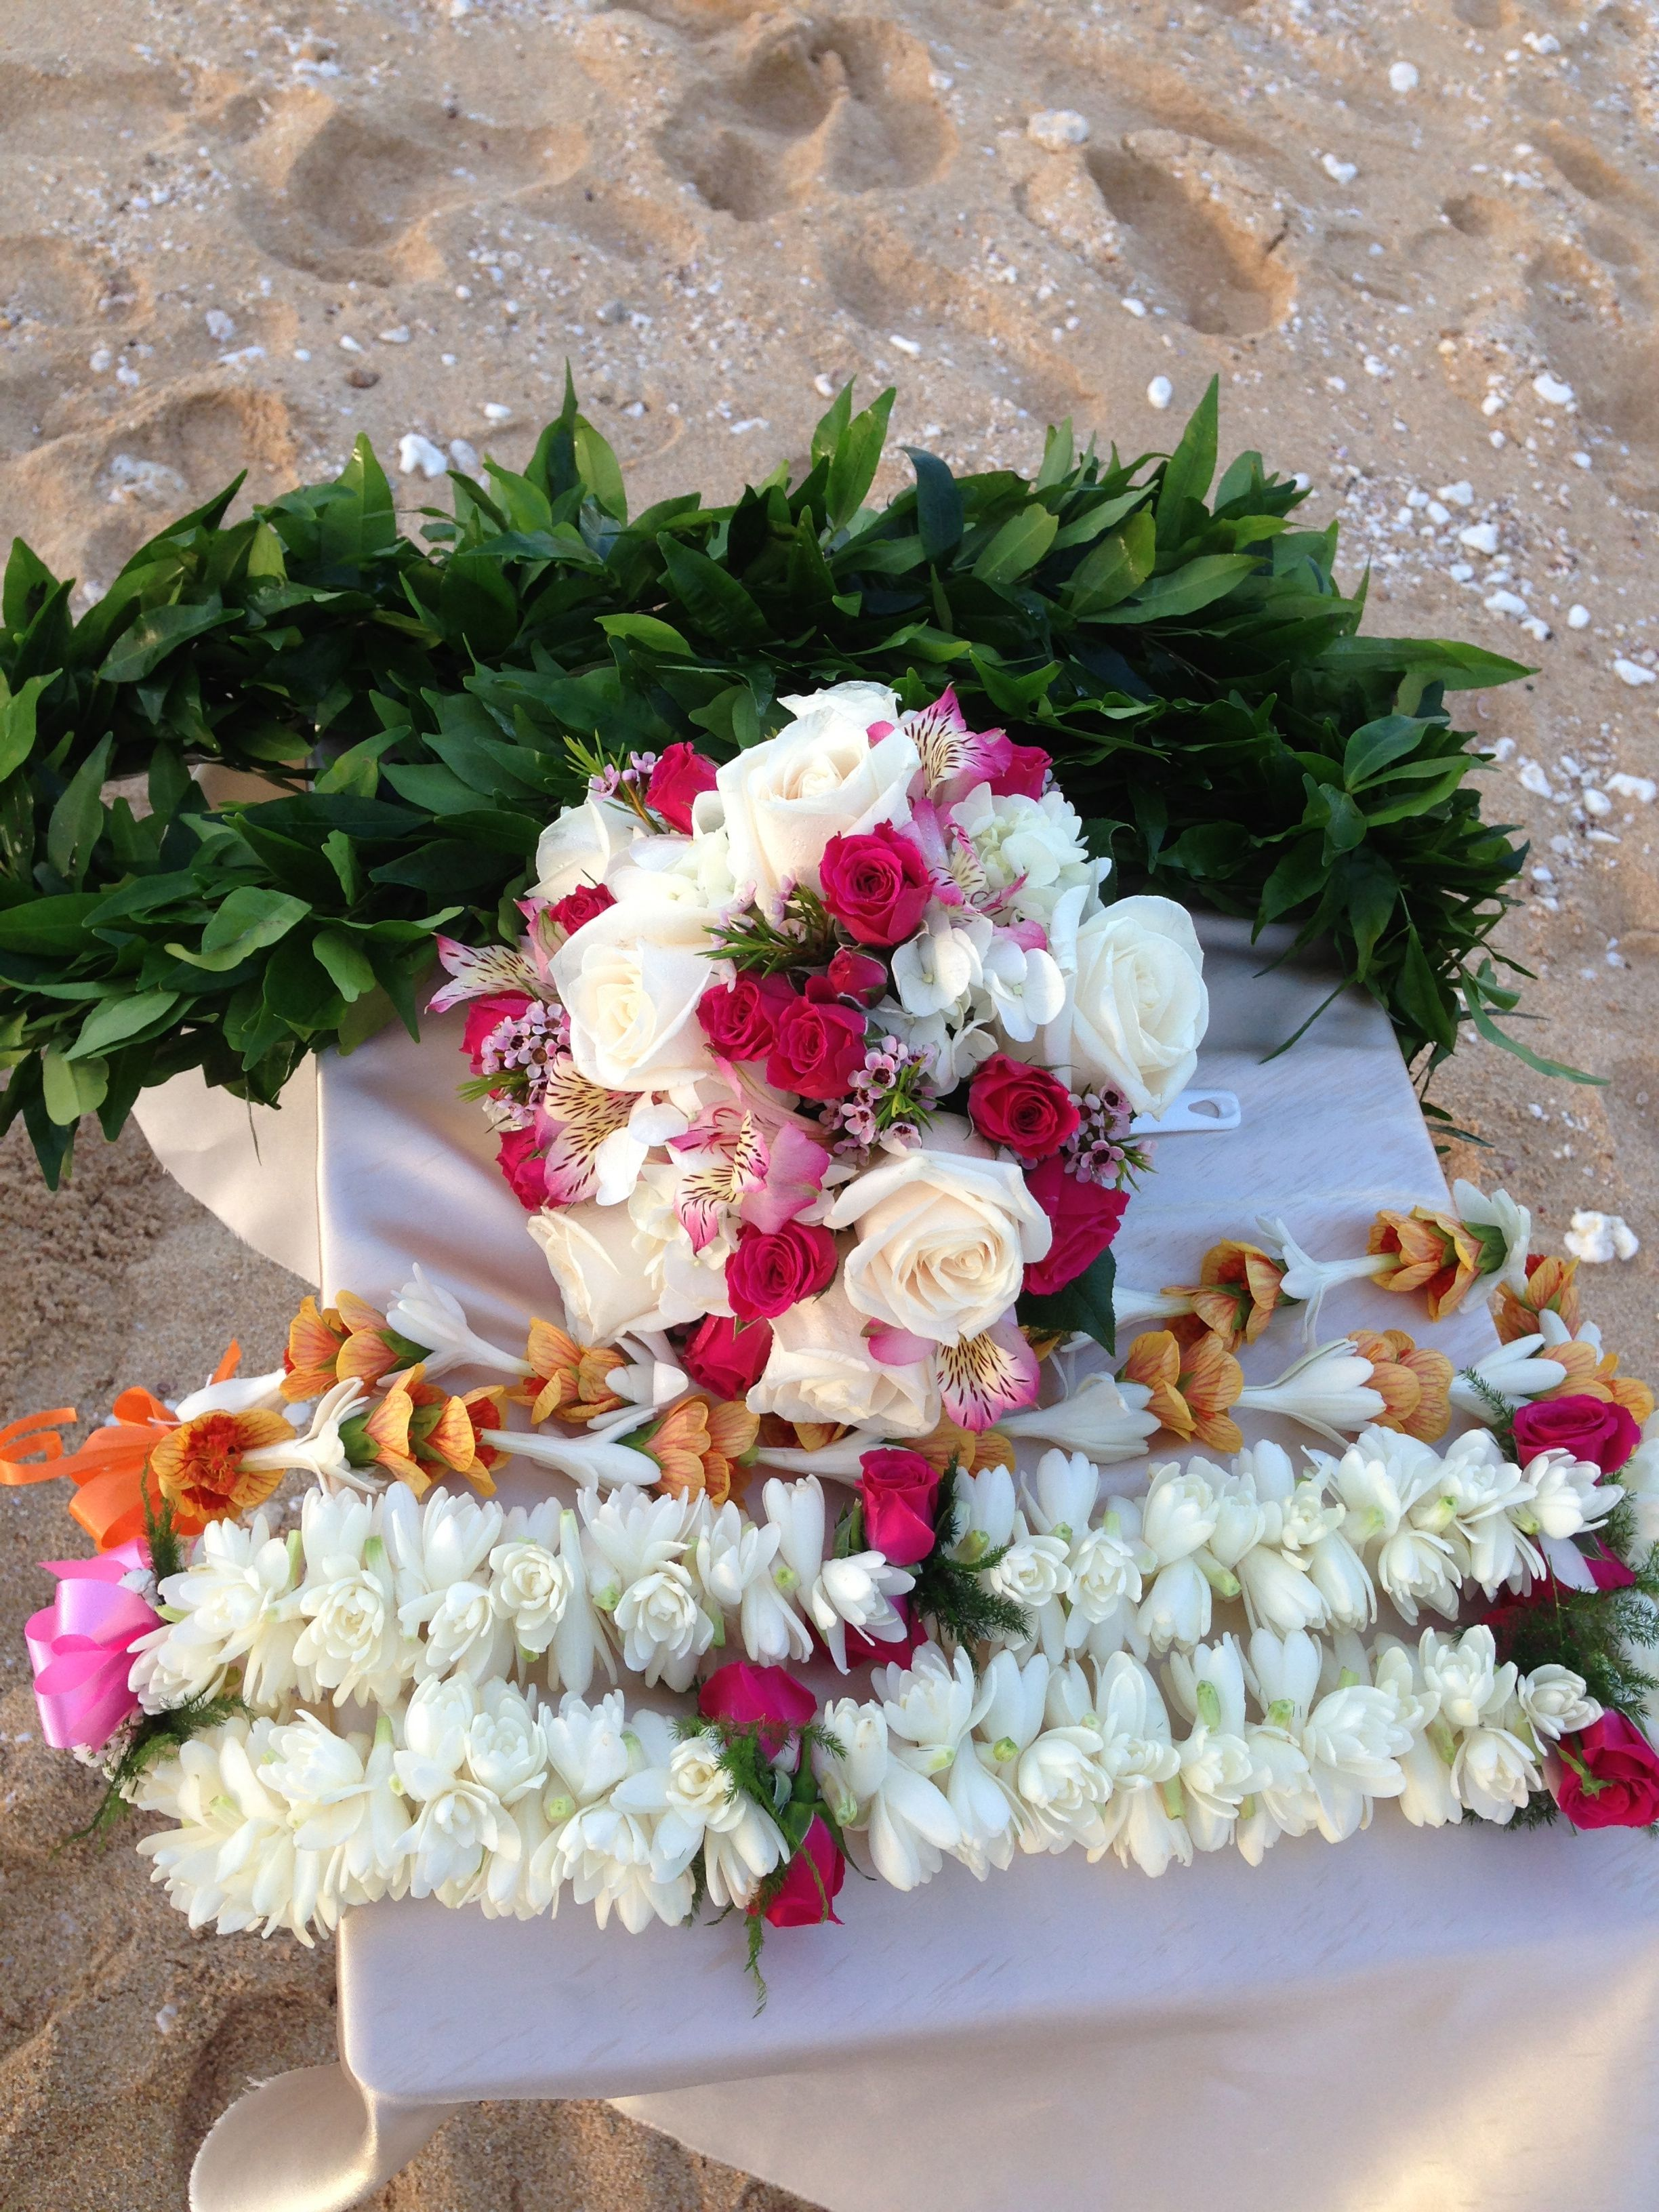 Islander weddings in honolulu hawaii provides colorful flower islander weddings in honolulu hawaii provides colorful flower bouquets and beautiful leis made of tuberose izmirmasajfo